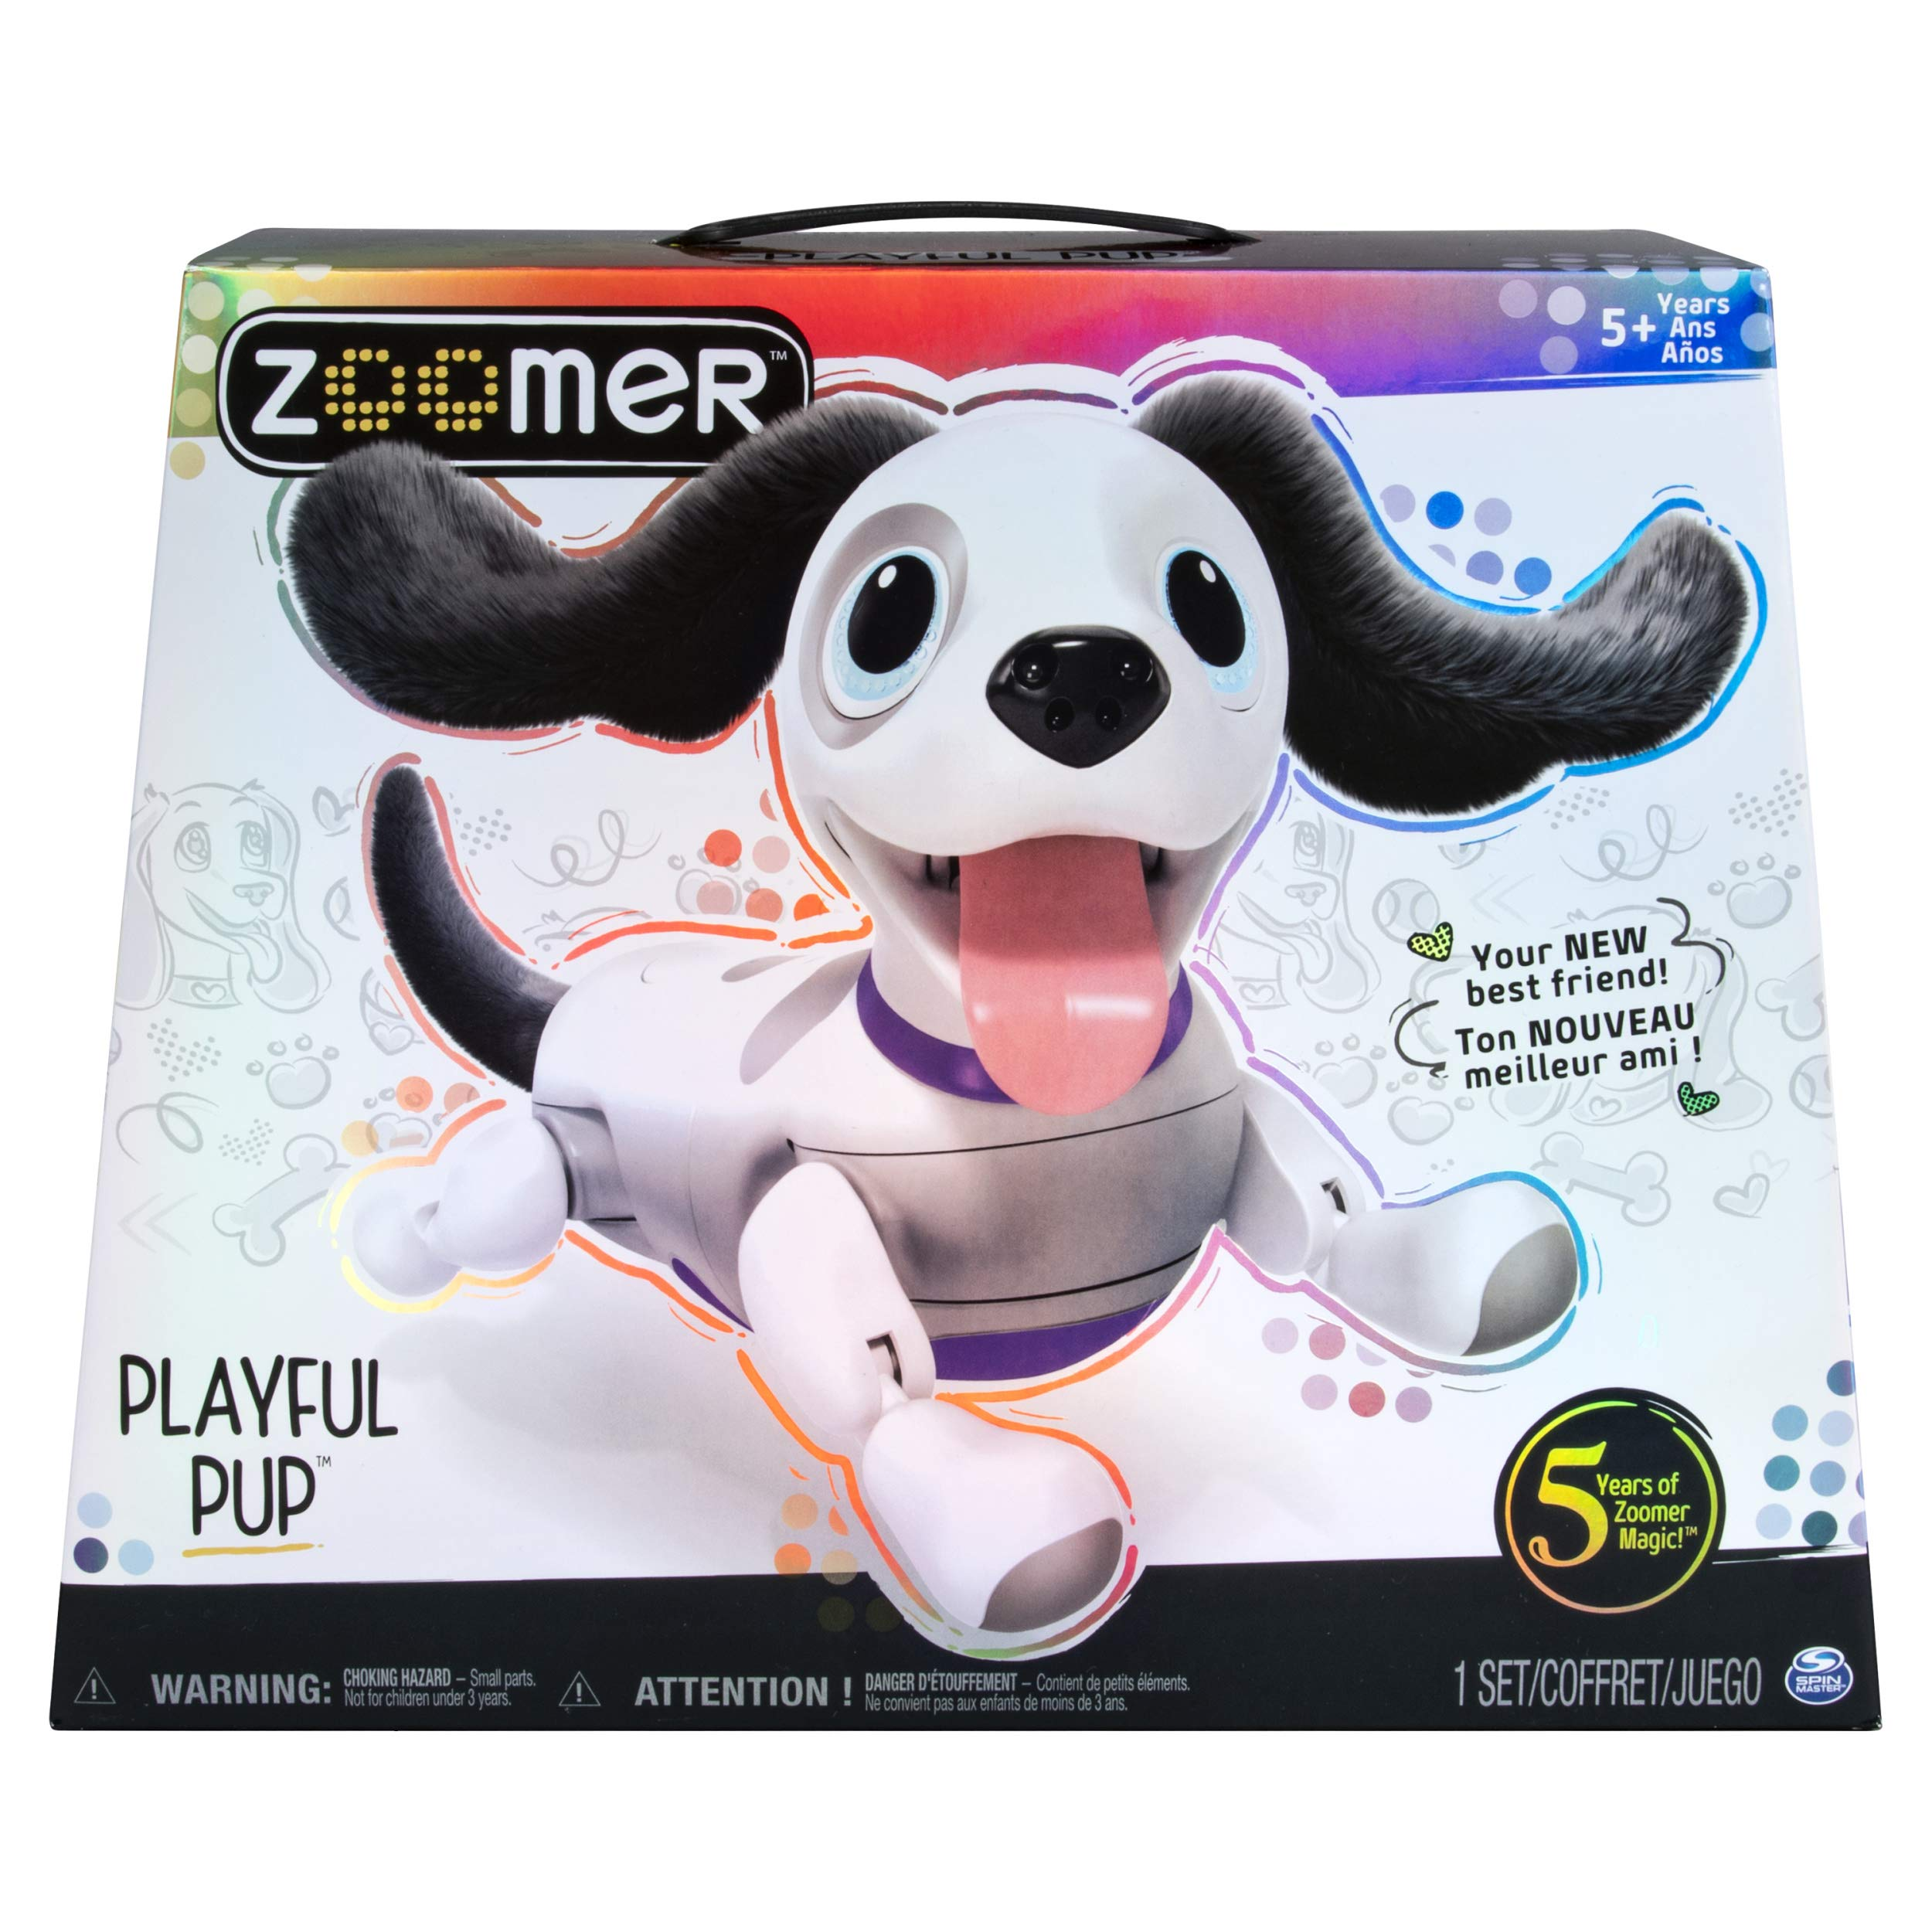 zoomer Playful Pup, Responsive Robotic Dog with Voice Recognition & Realistic Motion, For Ages 5 & Up by Zoomer (Image #2)